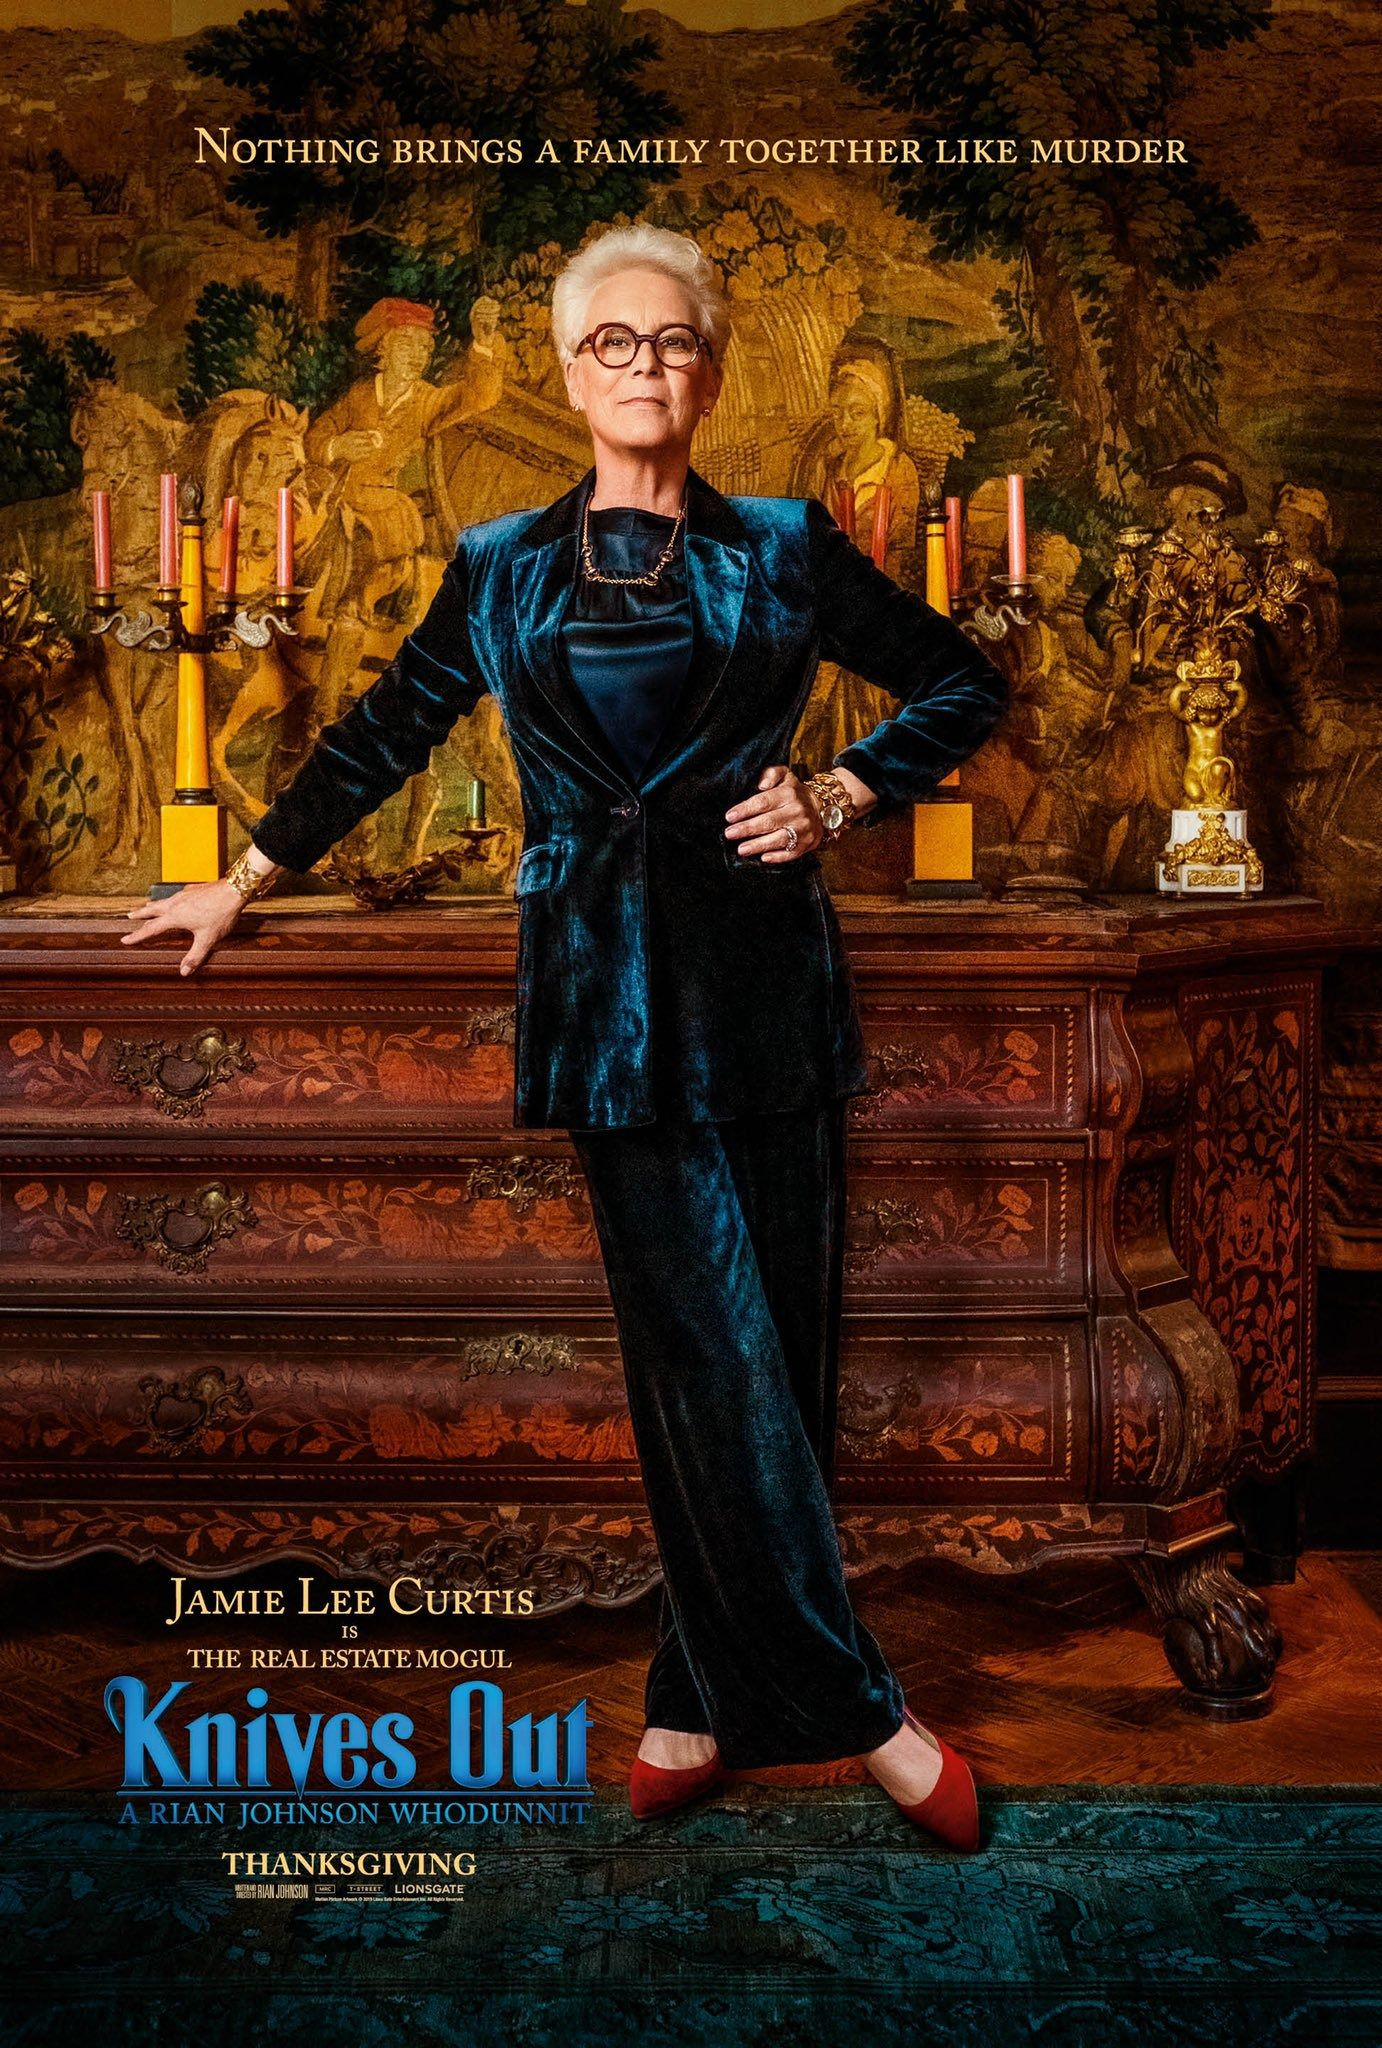 Jamie Lee Curtis is the Real Estate Mogul